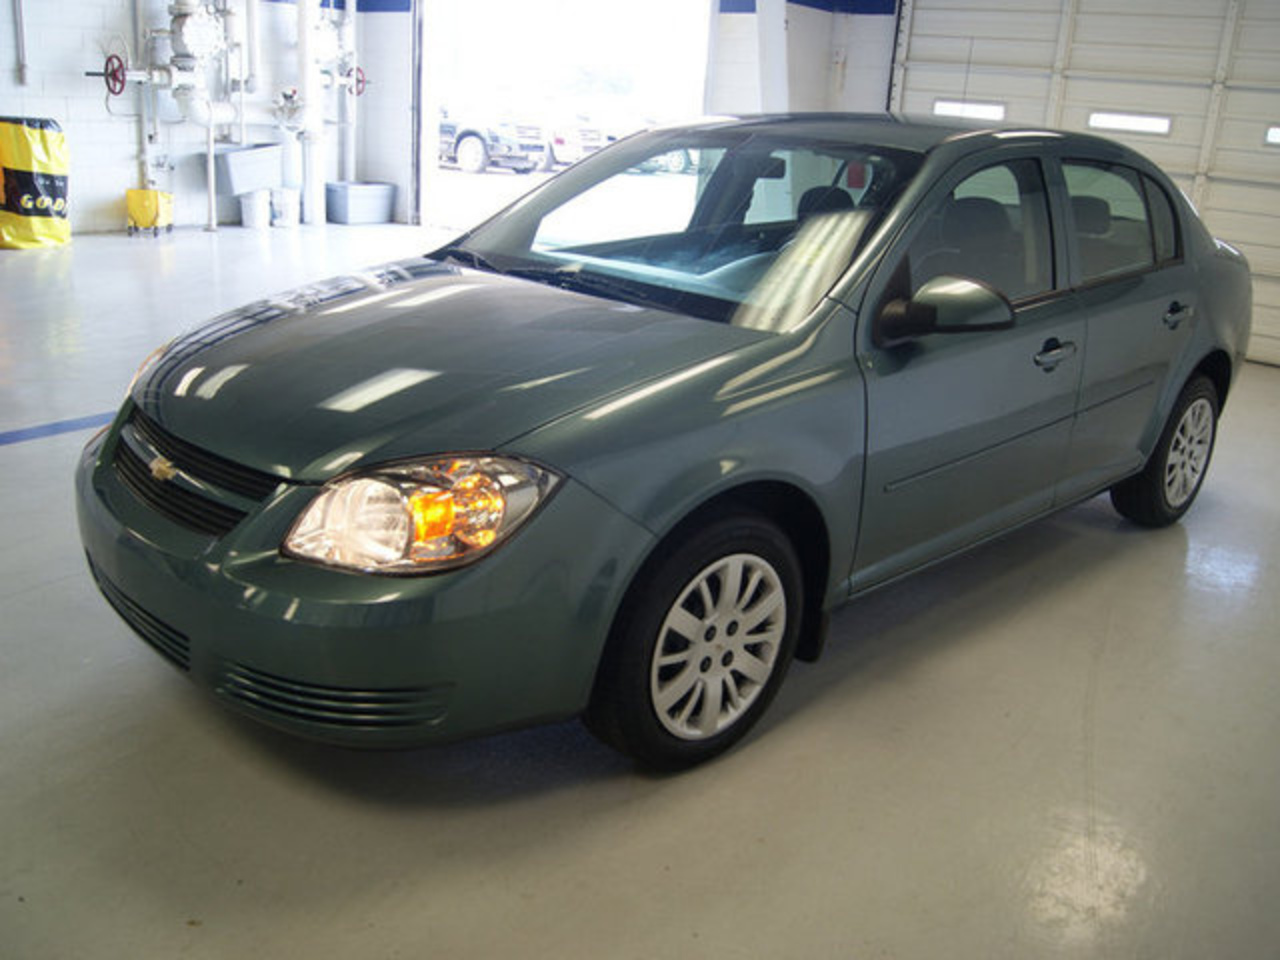 2010 Chevrolet Cobalt LT 4 Dr Sedan | Flickr - Photo Sharing!